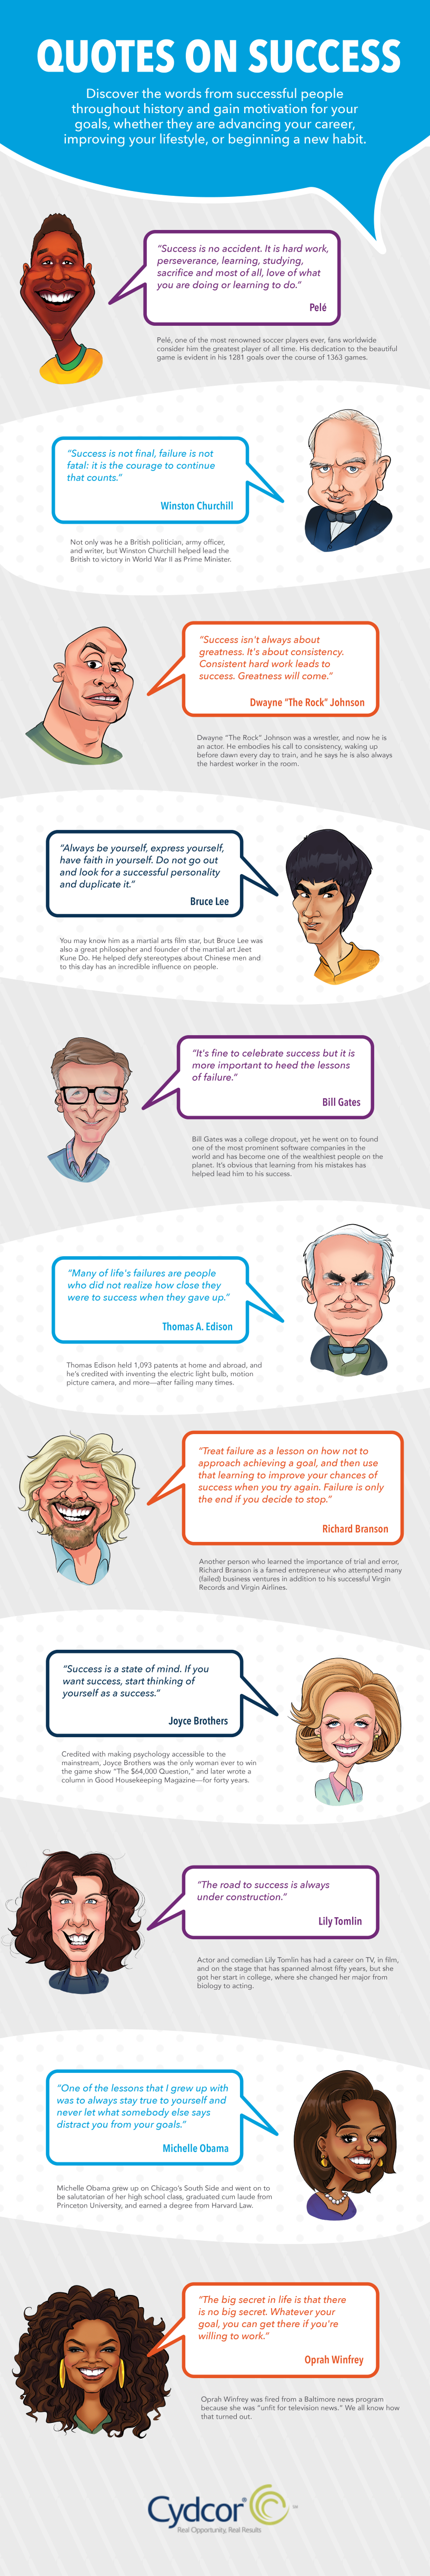 Infographic featuring quotes about success from celebrities